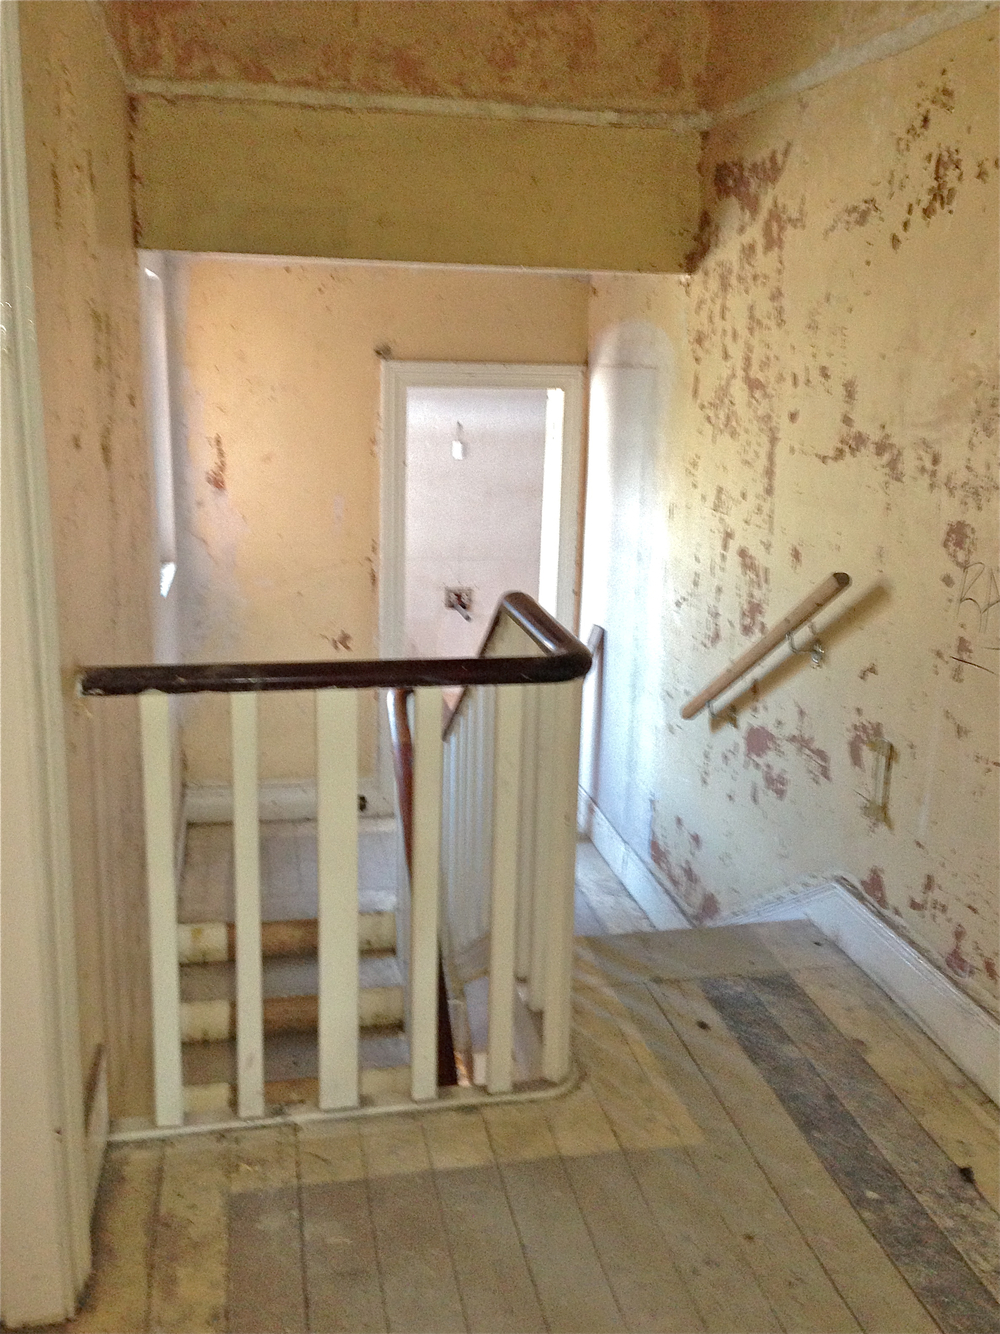 Staircase Mid-renovation | www.interiorsmatter.com